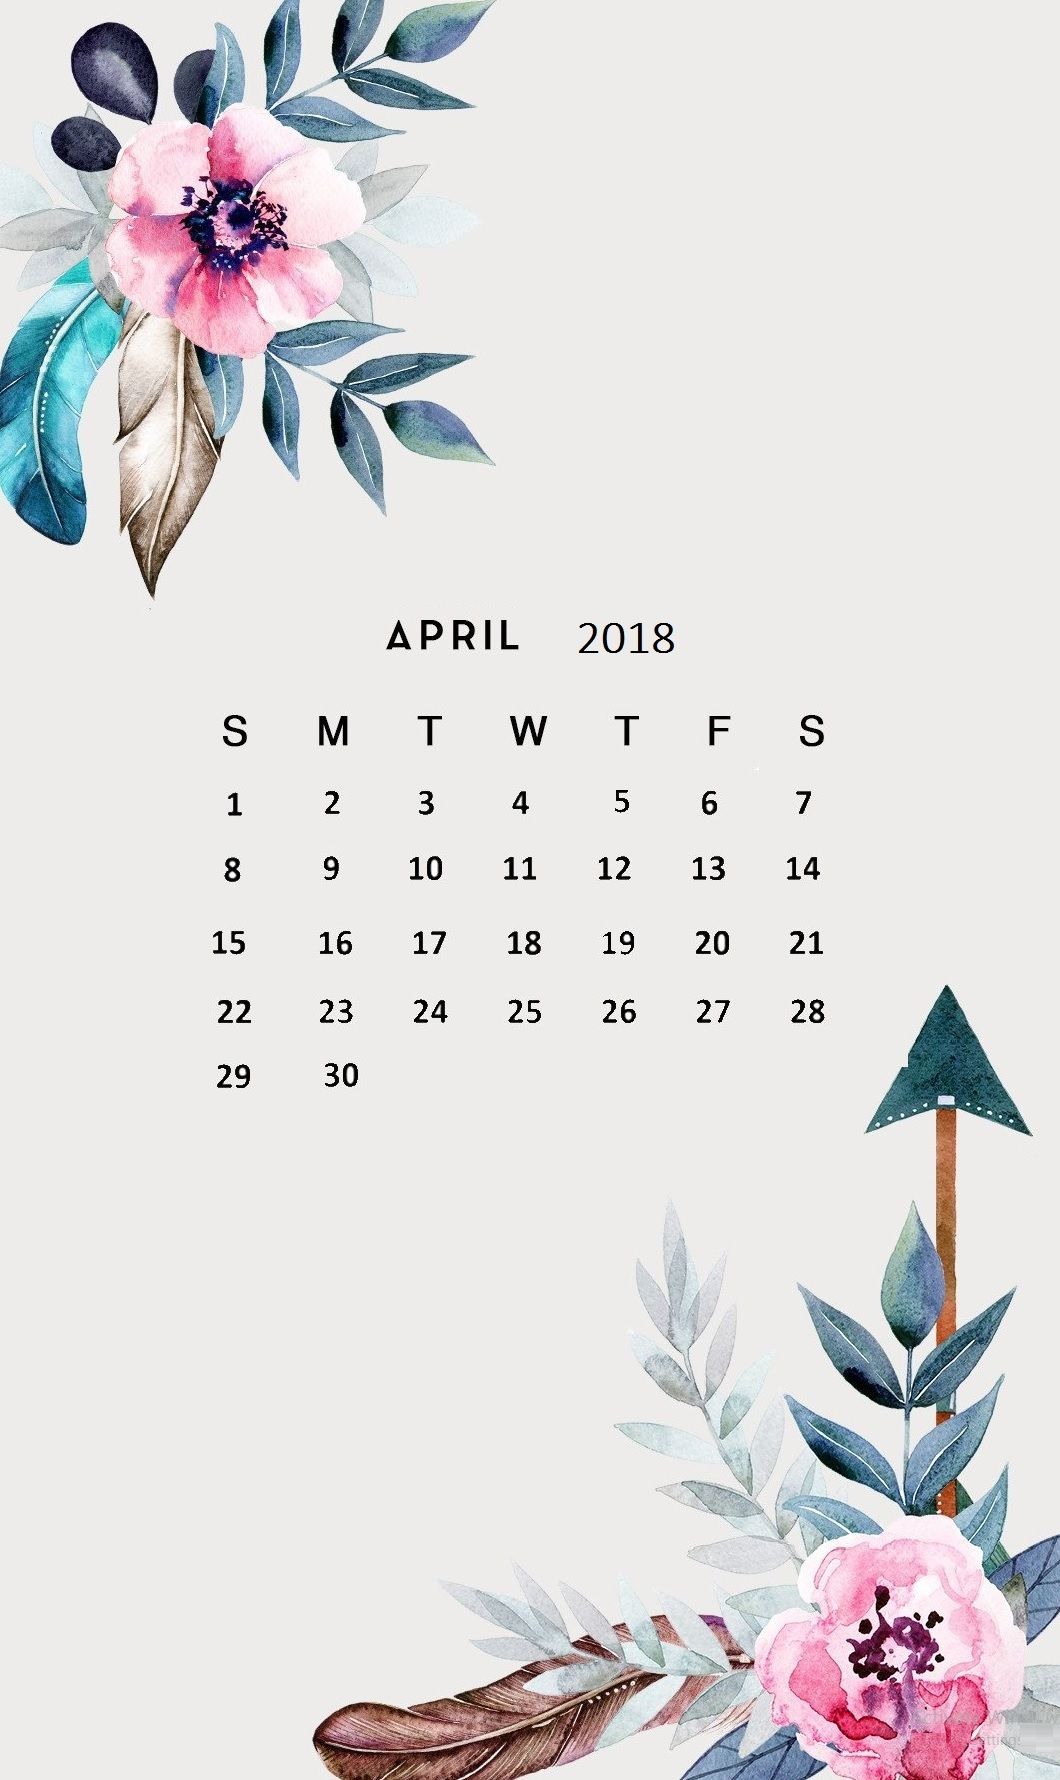 Calendar Wallpaper Originals : Amazing april calendar wallpaper to keep track of